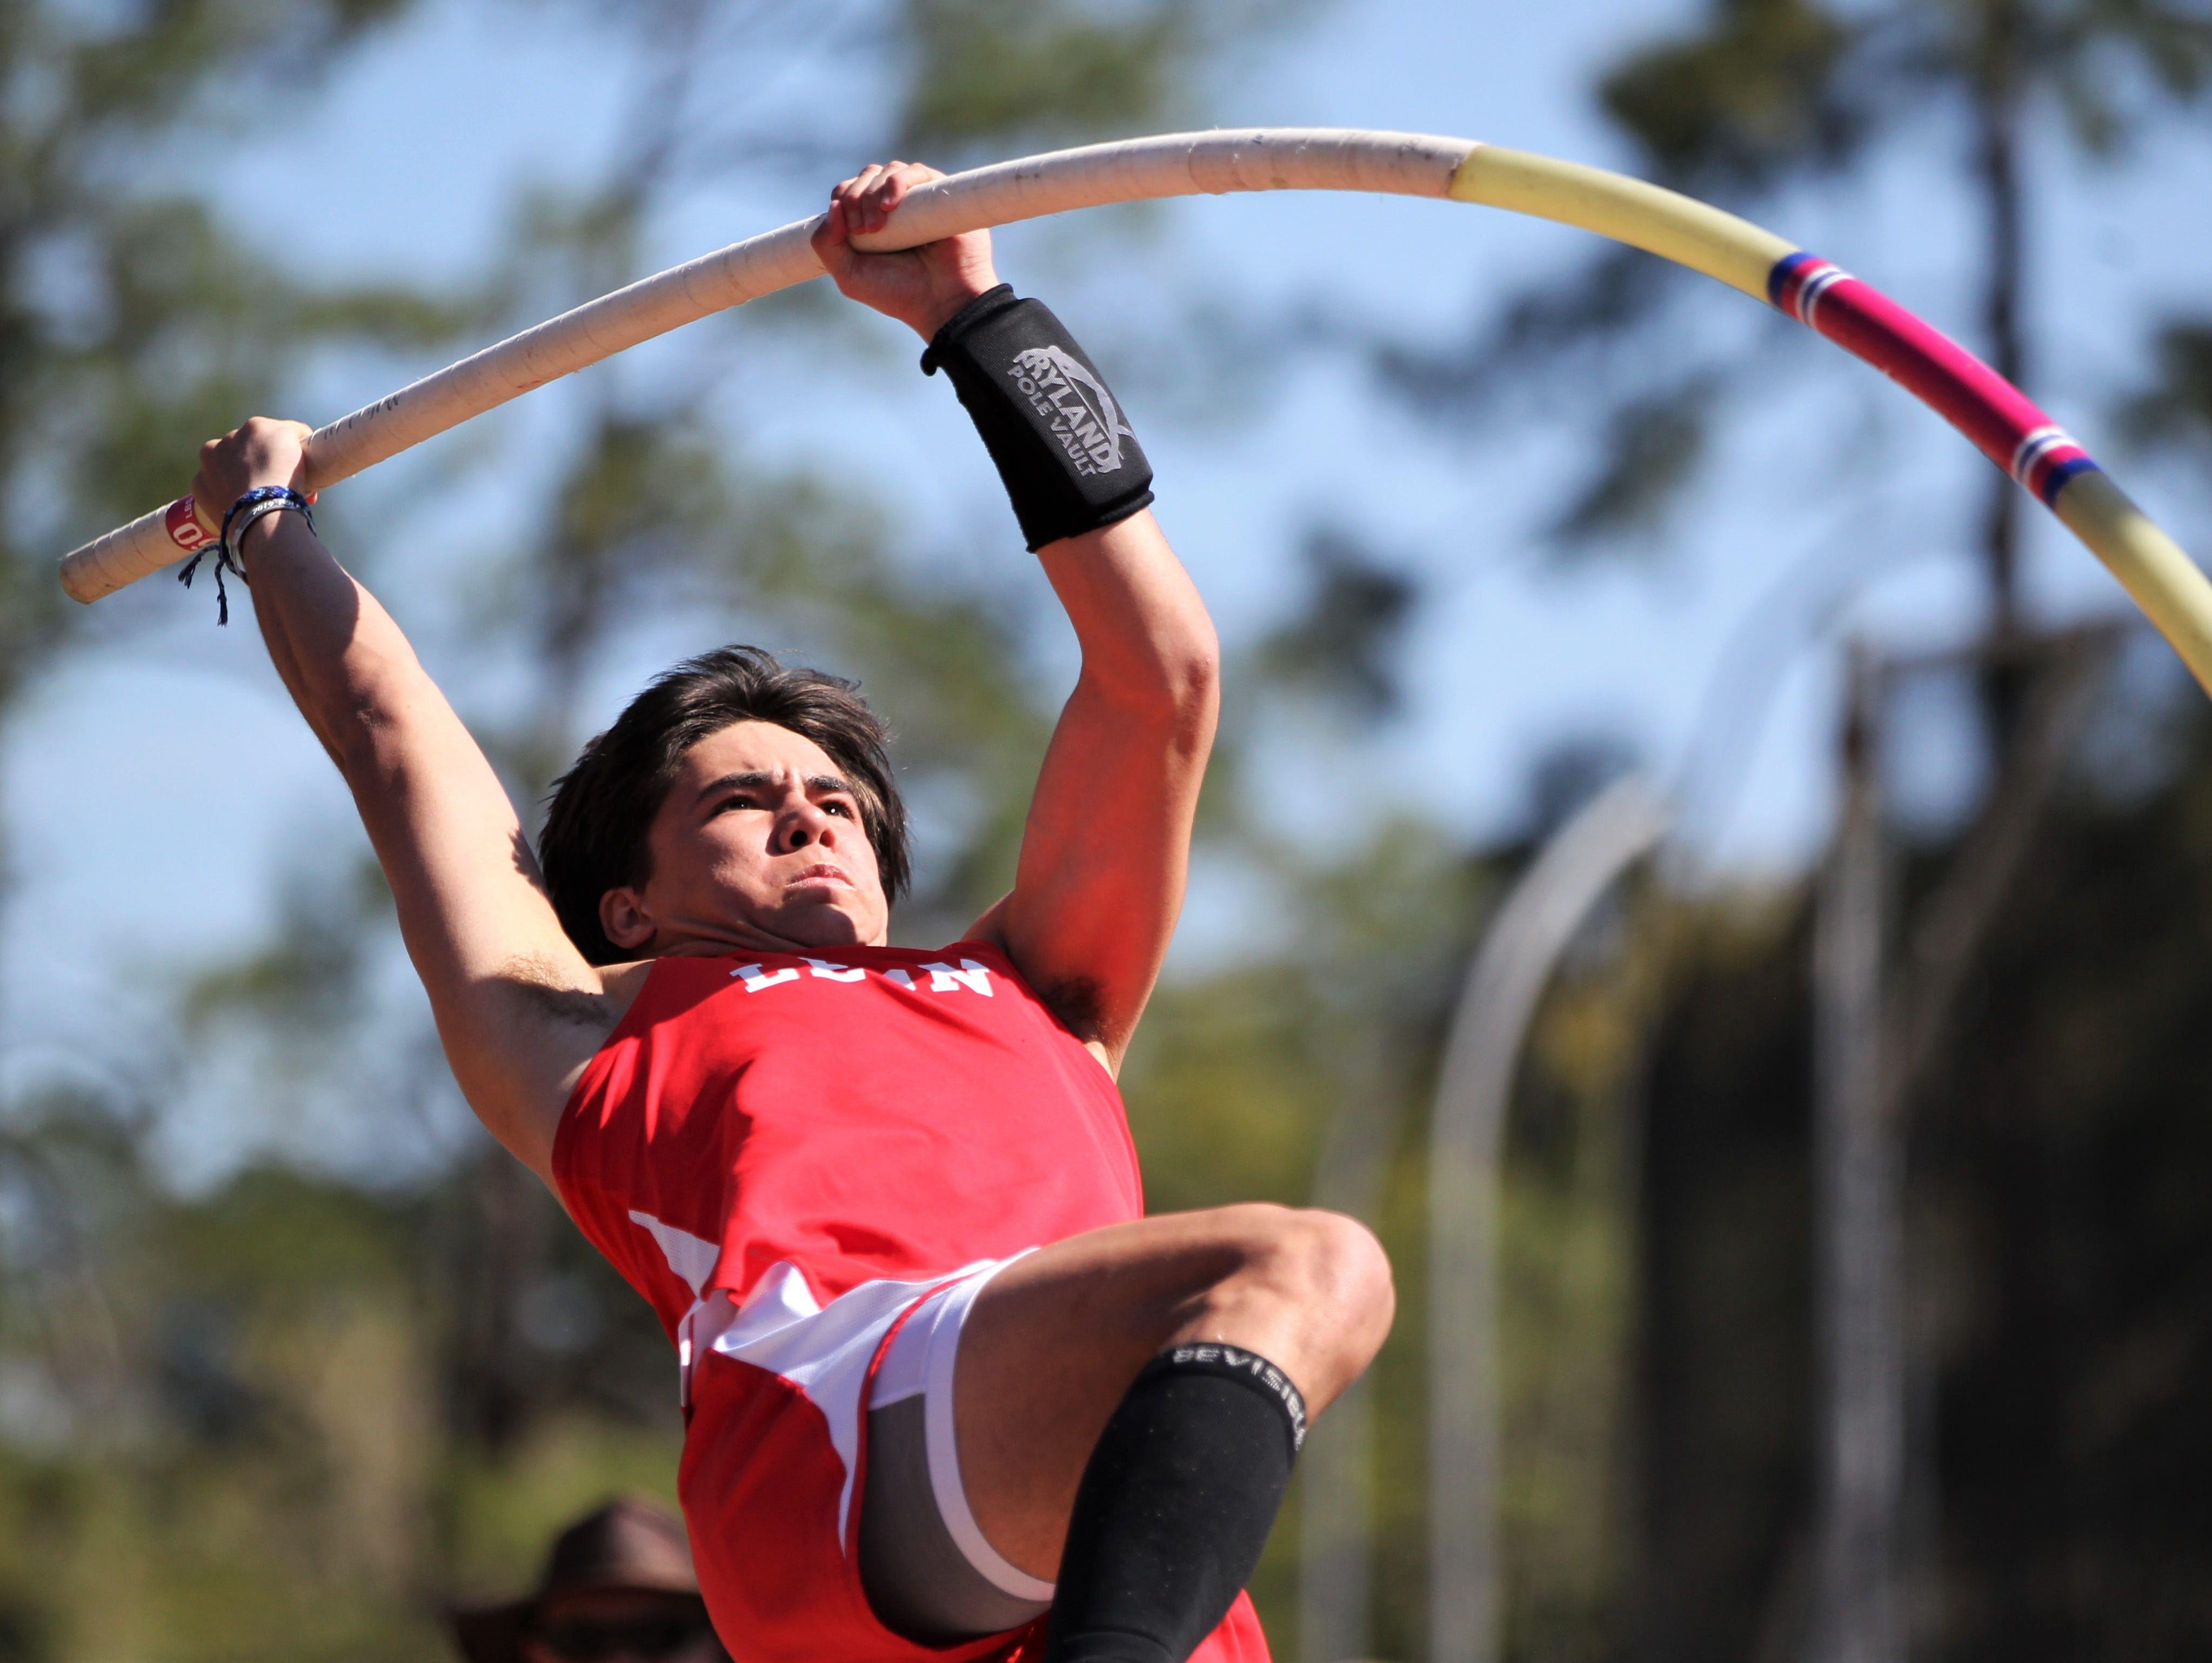 Leon senior Sebastian Campo pole vaults during the 40th annual FSU Relays at Mike Long Track on Saturday, March 23, 2019.